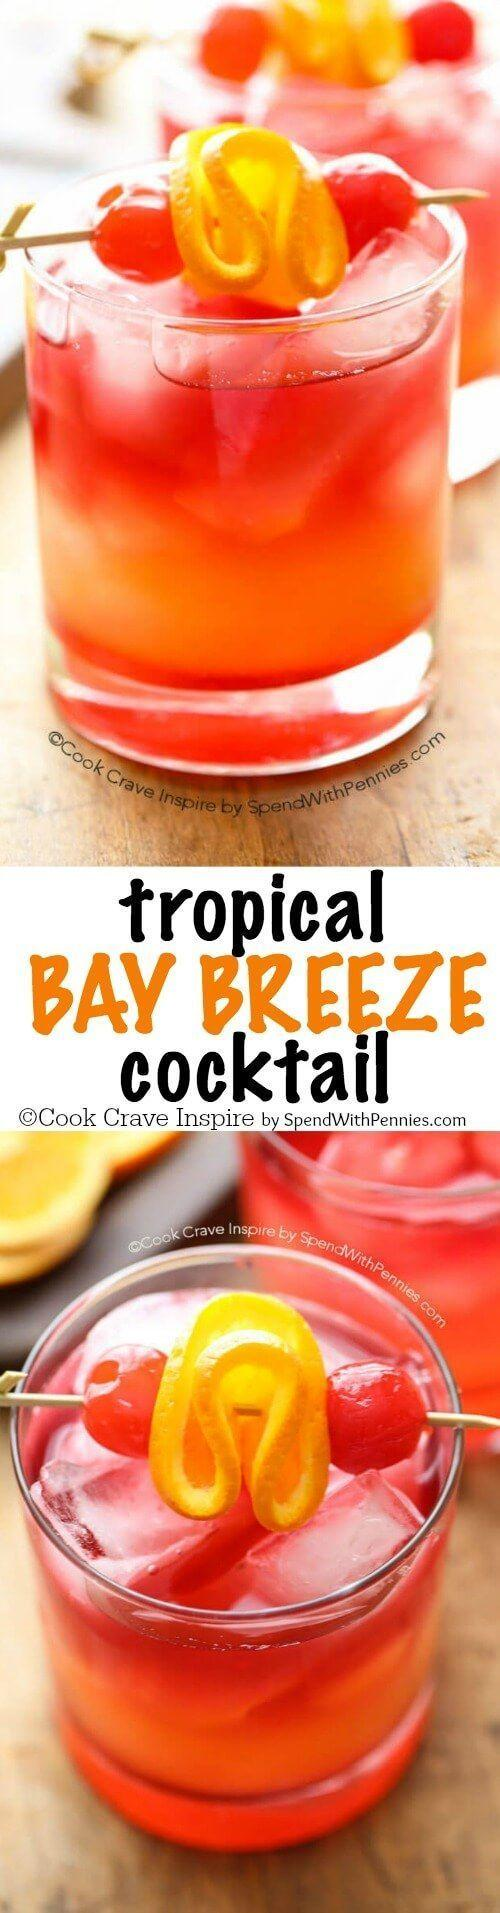 Hochzeit - This Easy To Make Tropical Bay Breeze Cocktail Is A Taste Of The Tropics With Flavors Of Pineapple And Coconut Rum. (Plus The Easy…